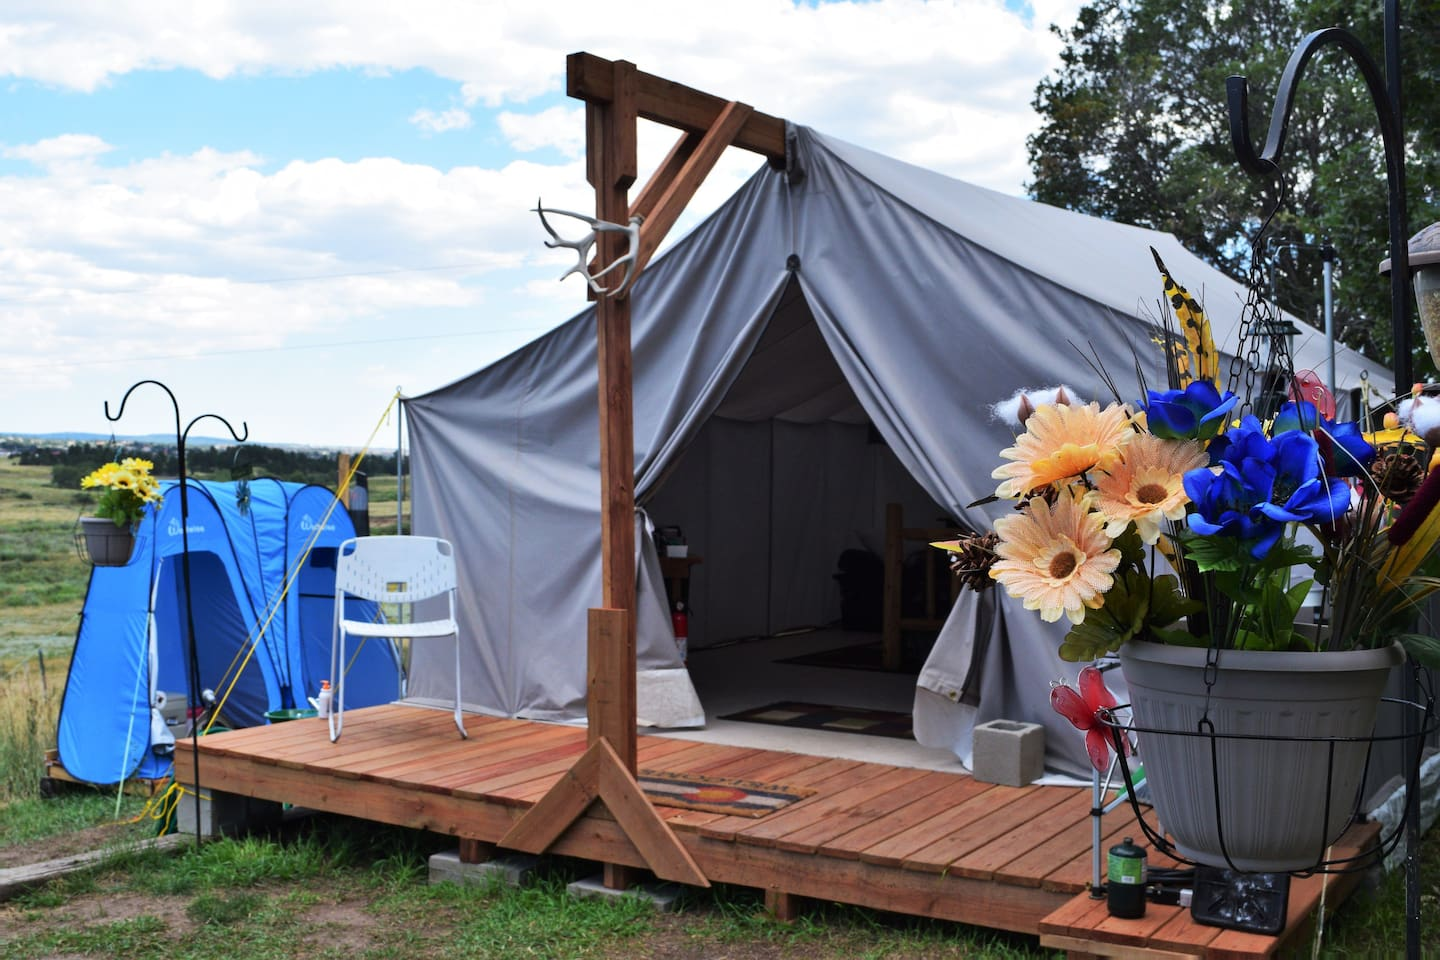 "Welcome to ""glamorous camping""...glamping! NO CAMPING GEAR REQUIRED. You will sleep in a queen-size bed, and our Davis Tent is the best on the market for outfitters tents. Our beautiful 6.5 acres of creek land will be a marvelous adventure for you."